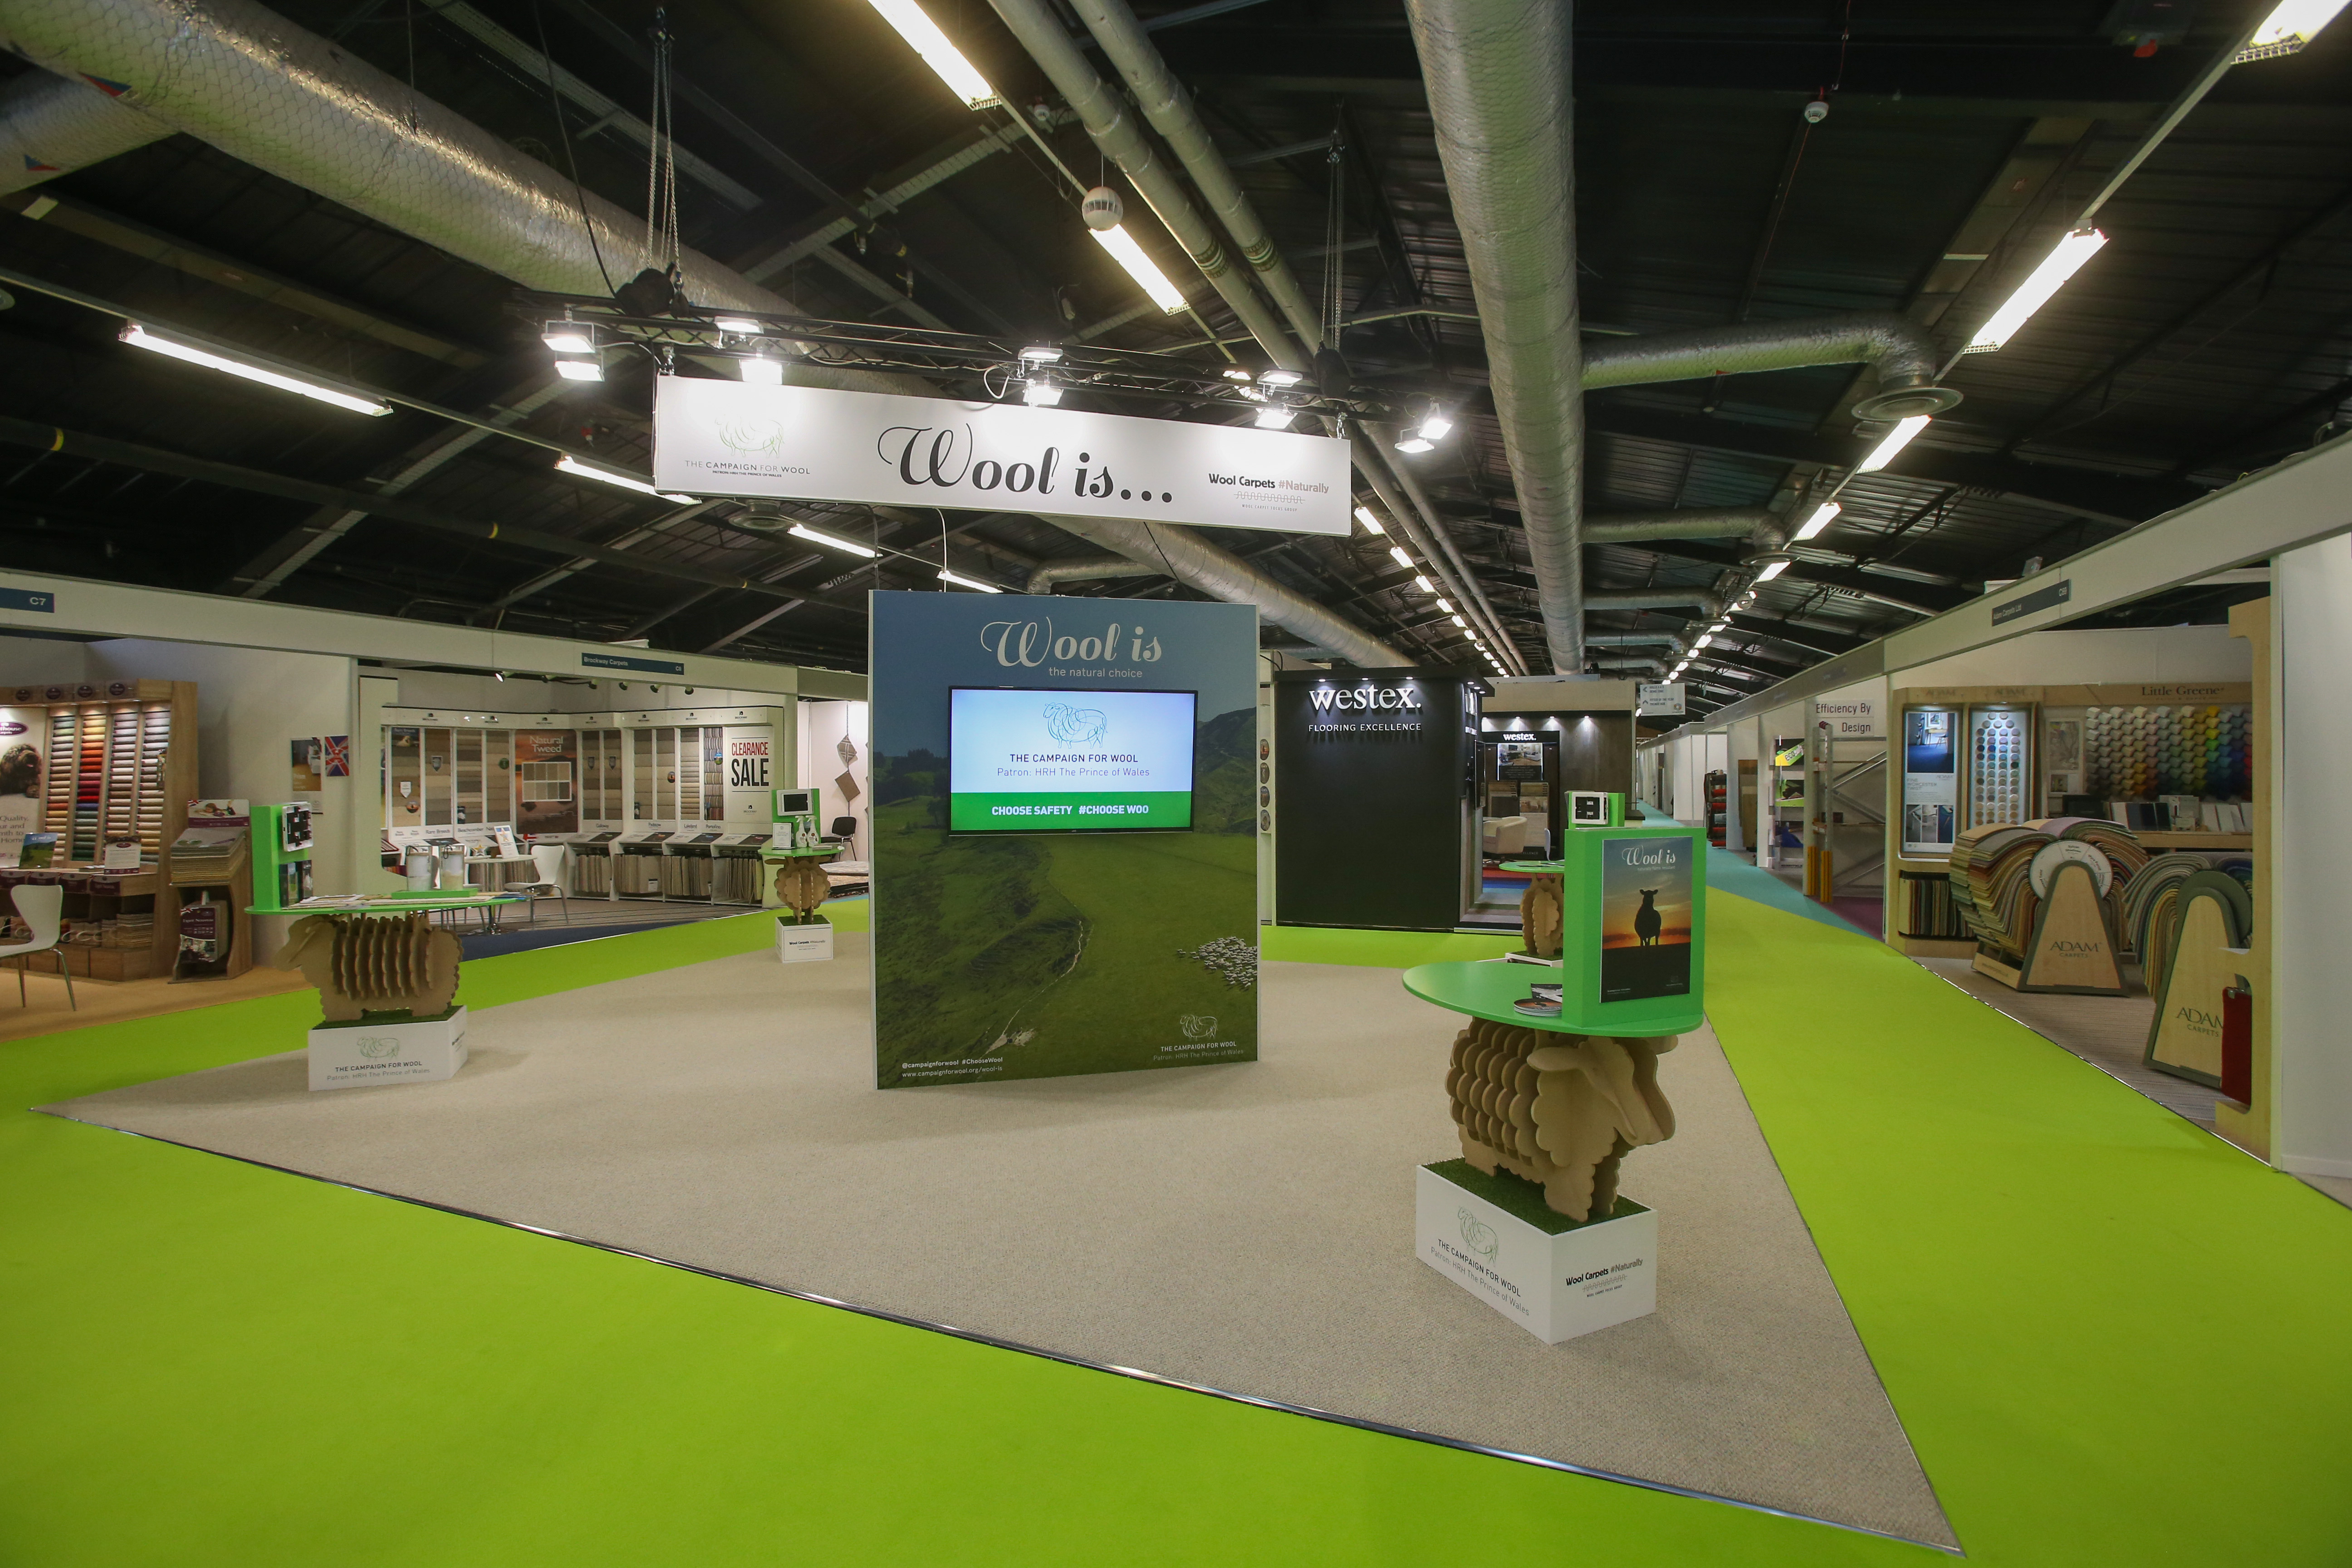 Wool Trends Centre